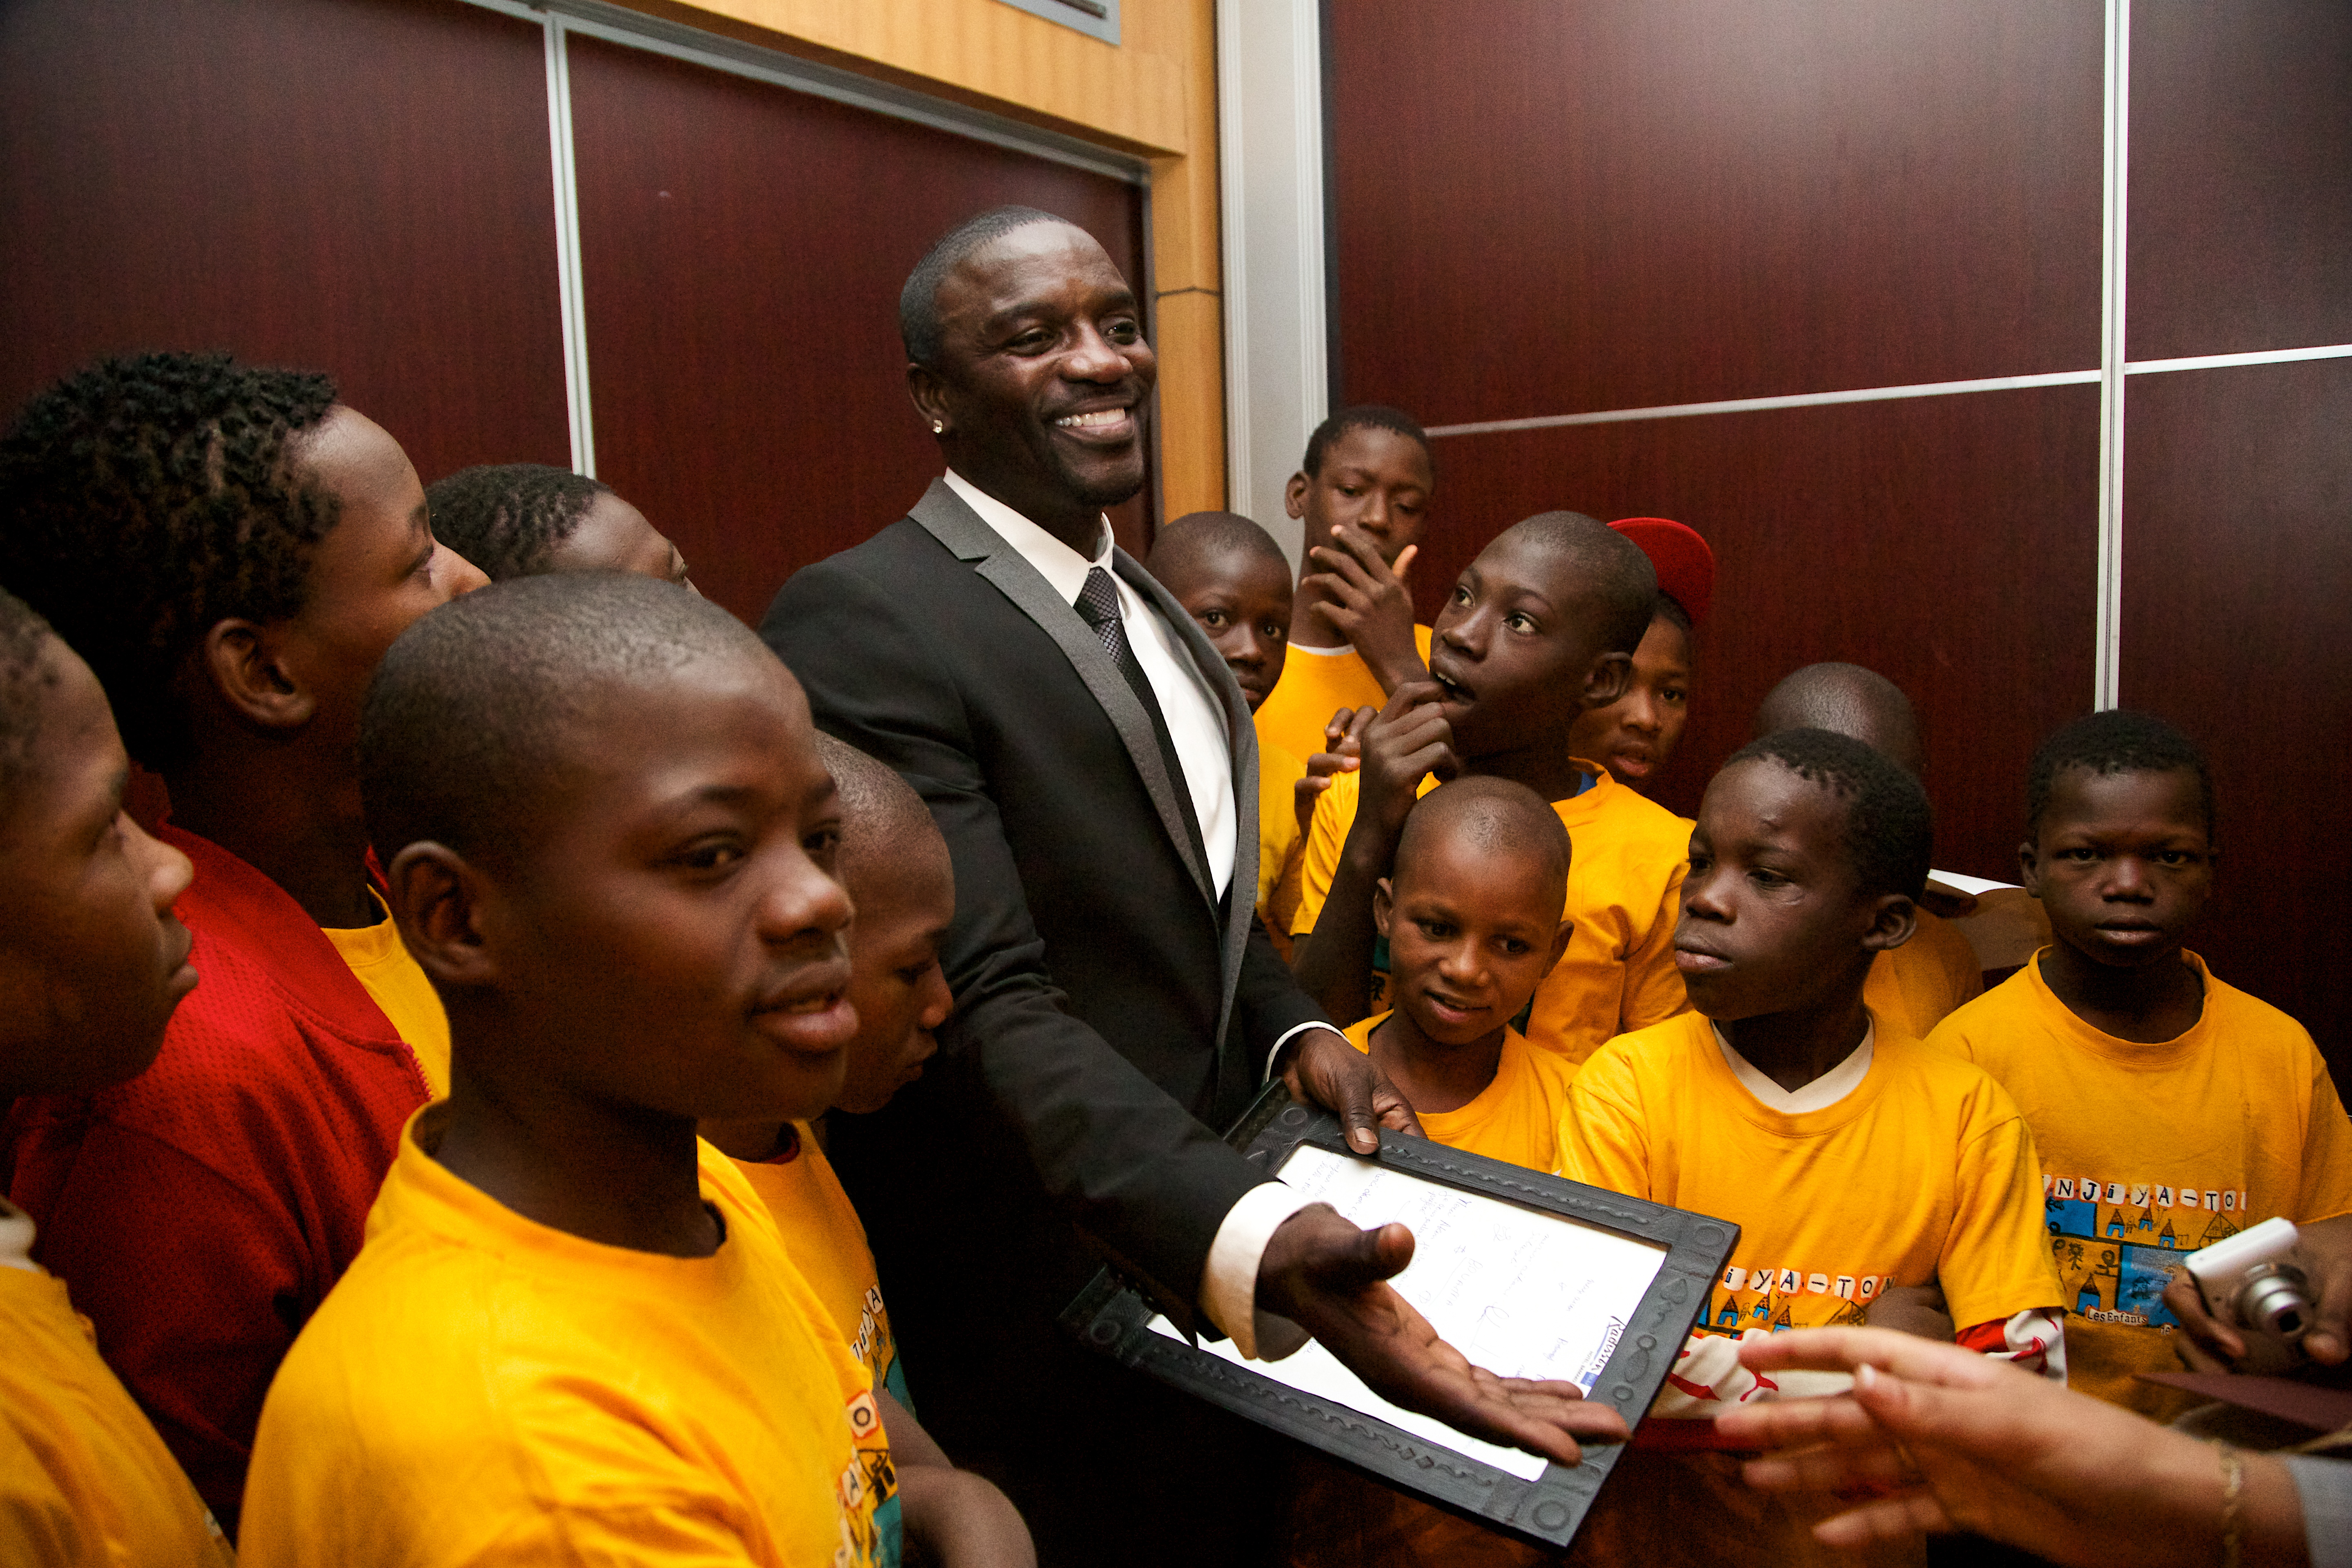 Akon meeting kids from a foster home